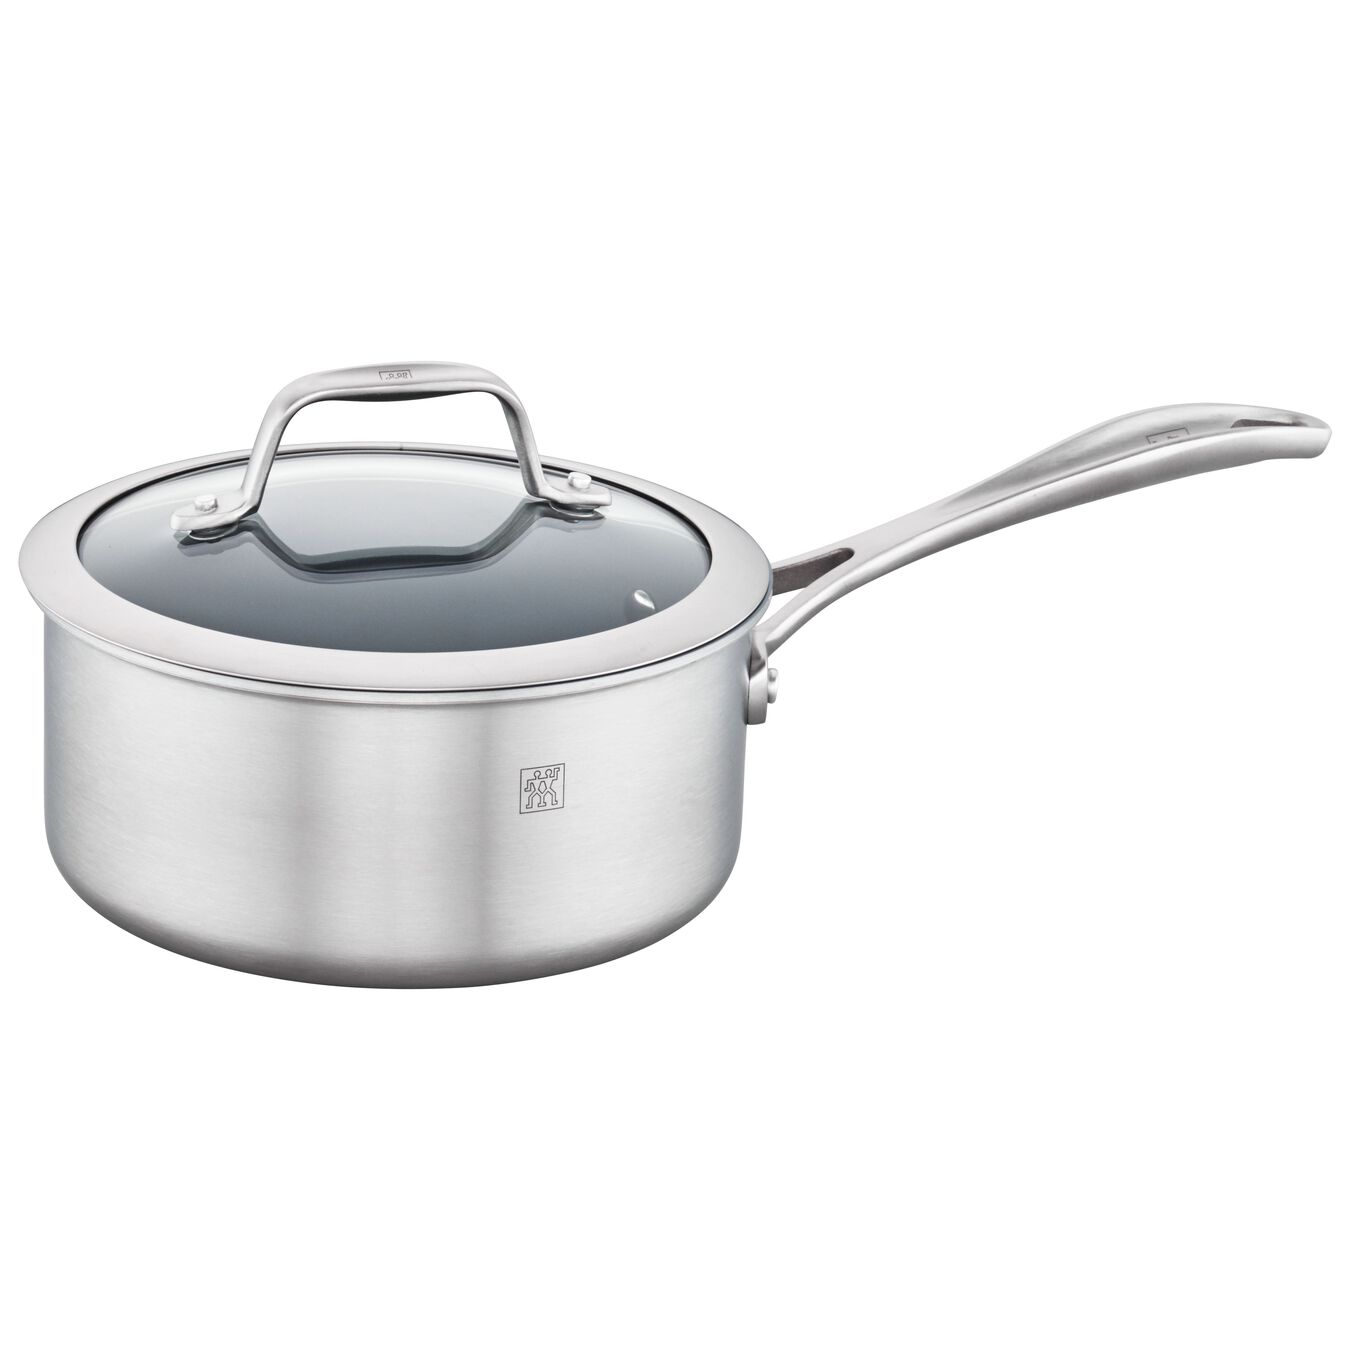 3-ply 2-qt Stainless Steel Ceramic Nonstick Saucepan,,large 2